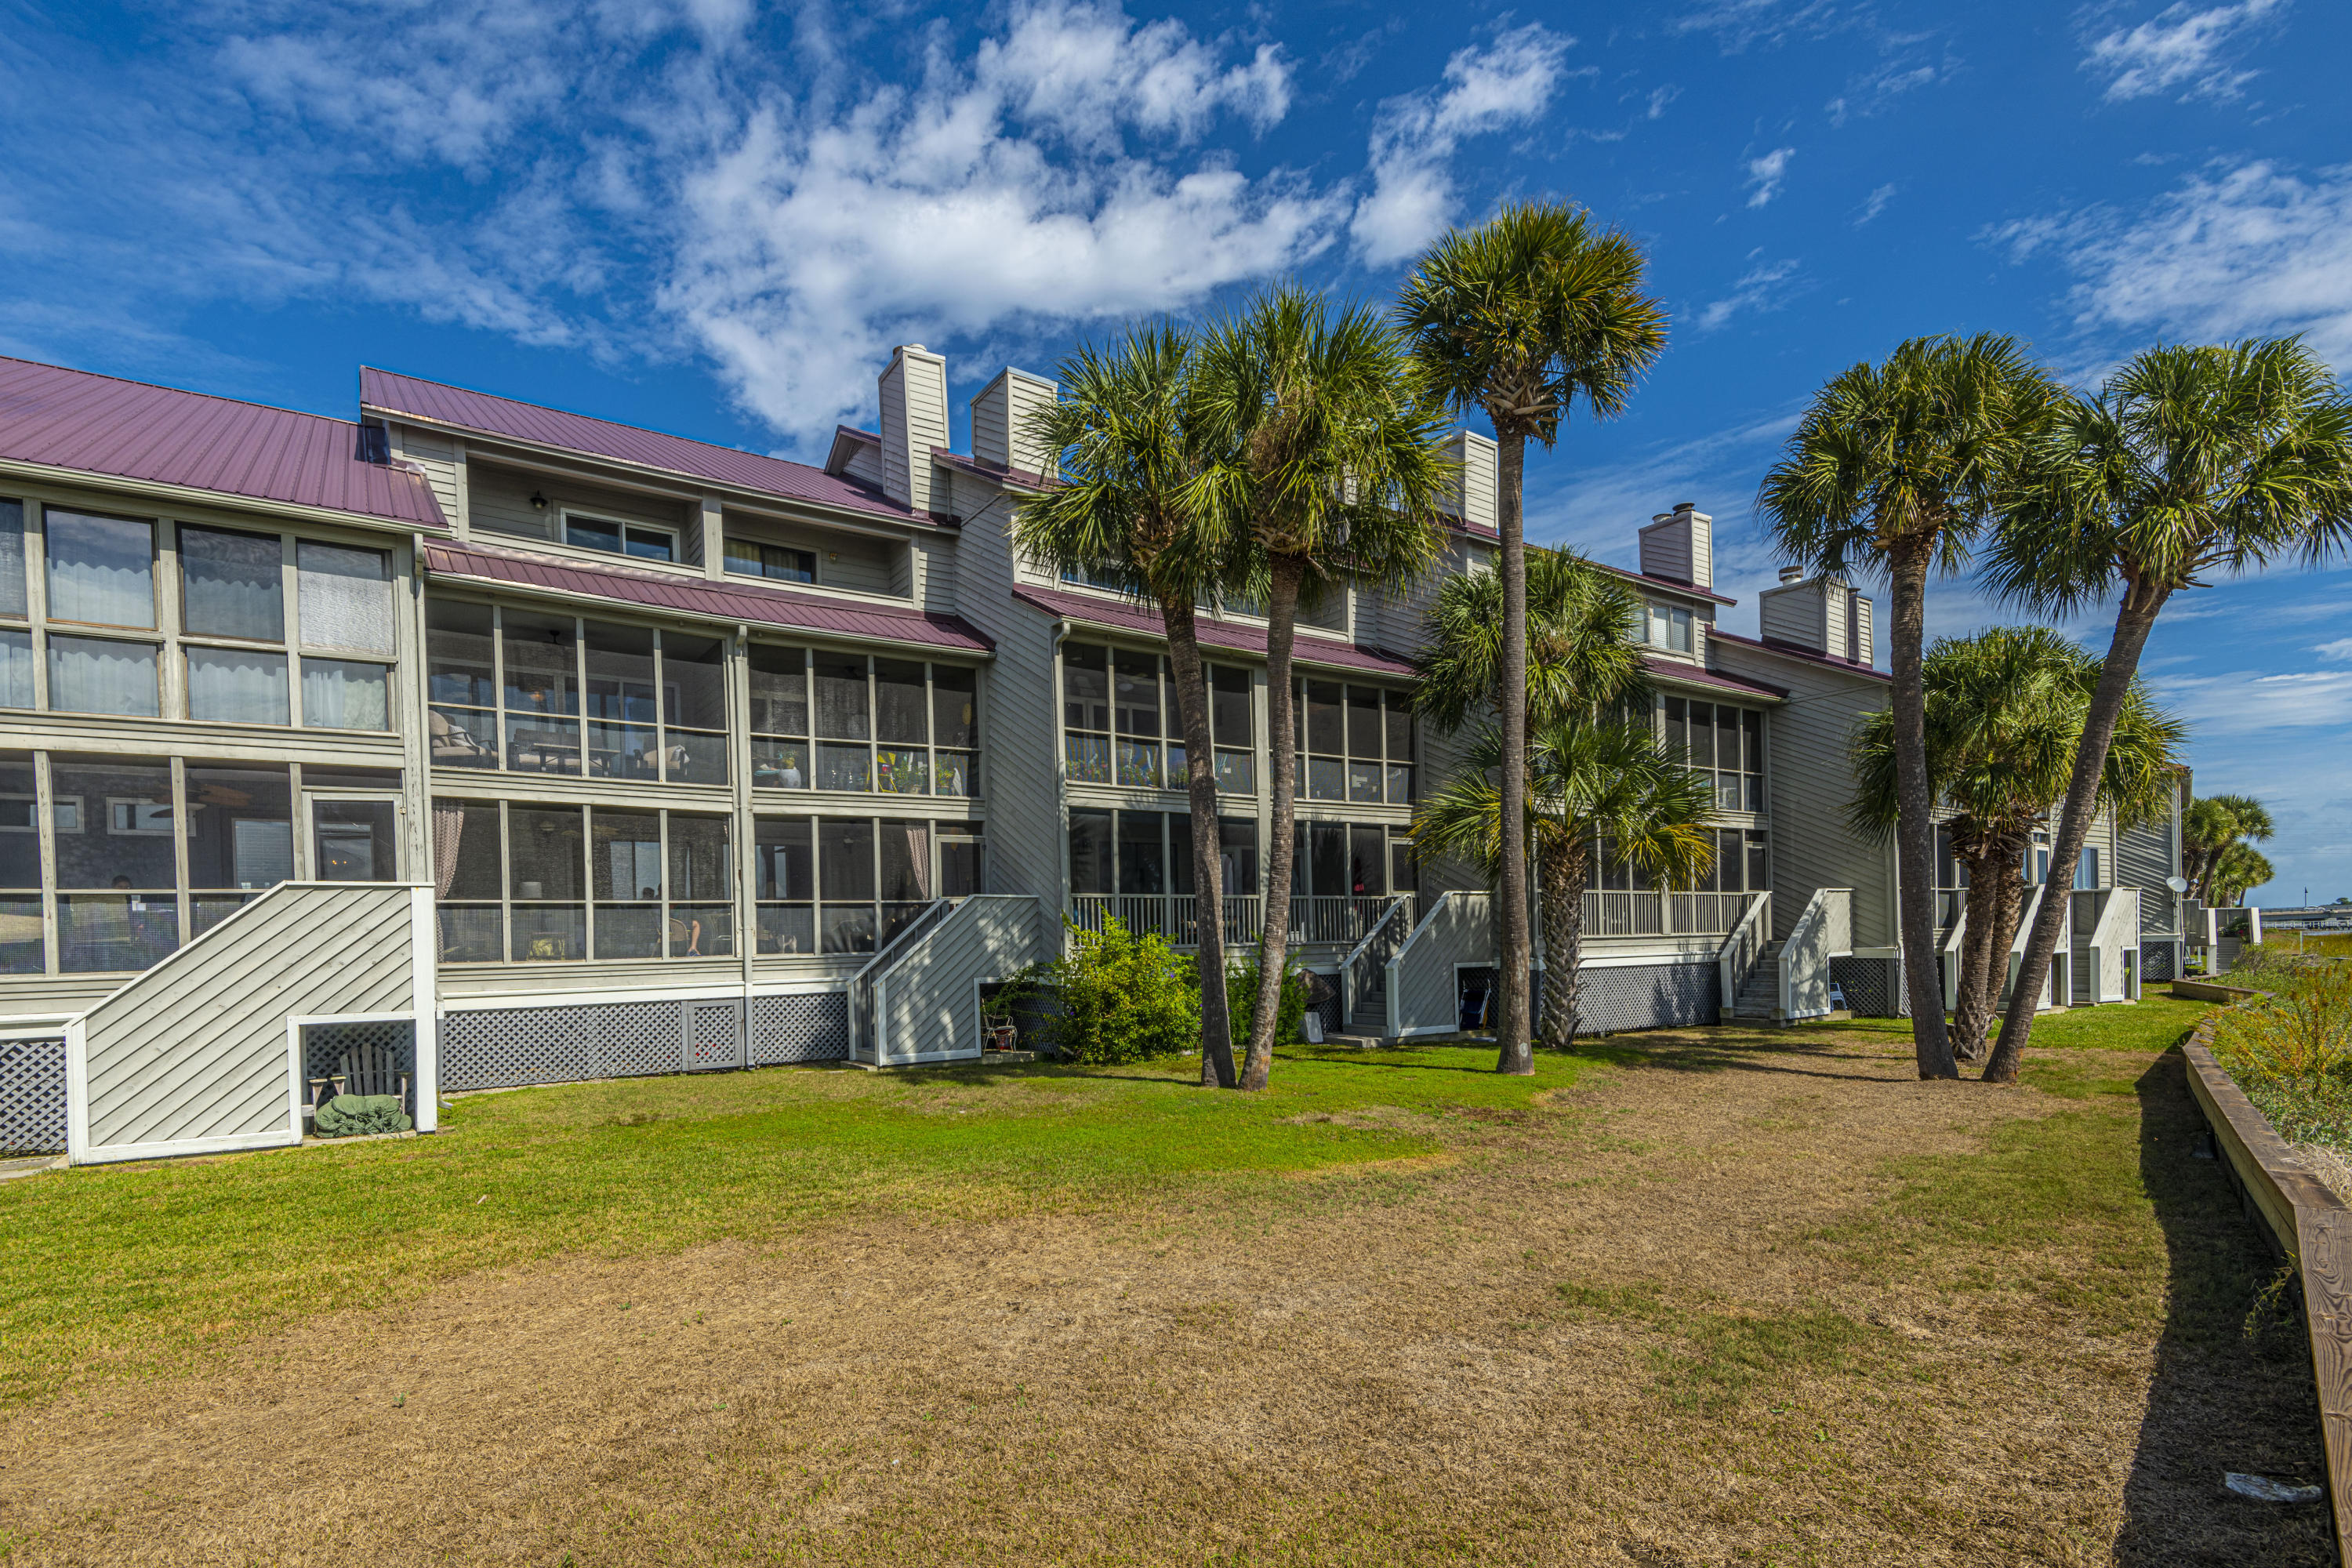 Mariners Cay Homes For Sale - 60 Mariners Cay, Folly Beach, SC - 31